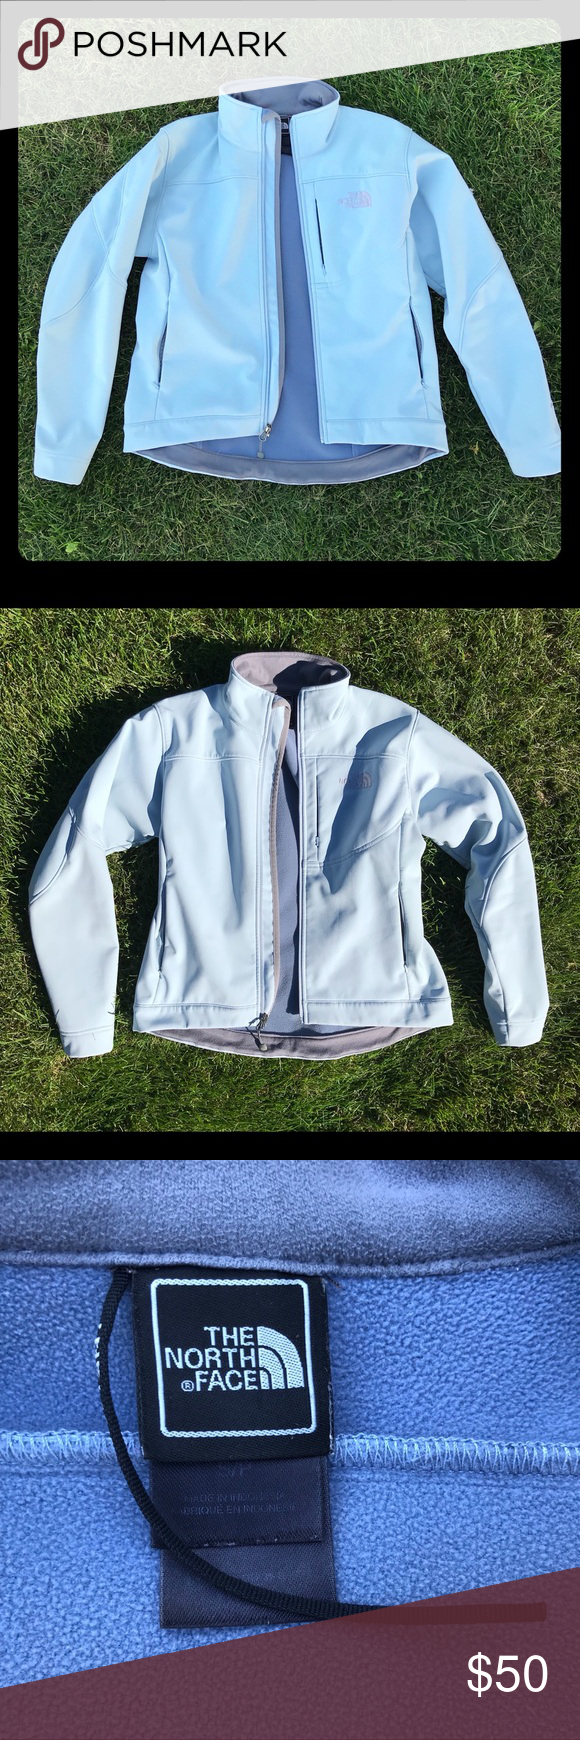 North Face Jacket North Face Jacket Fashion Fashion Trends [ 1740 x 580 Pixel ]